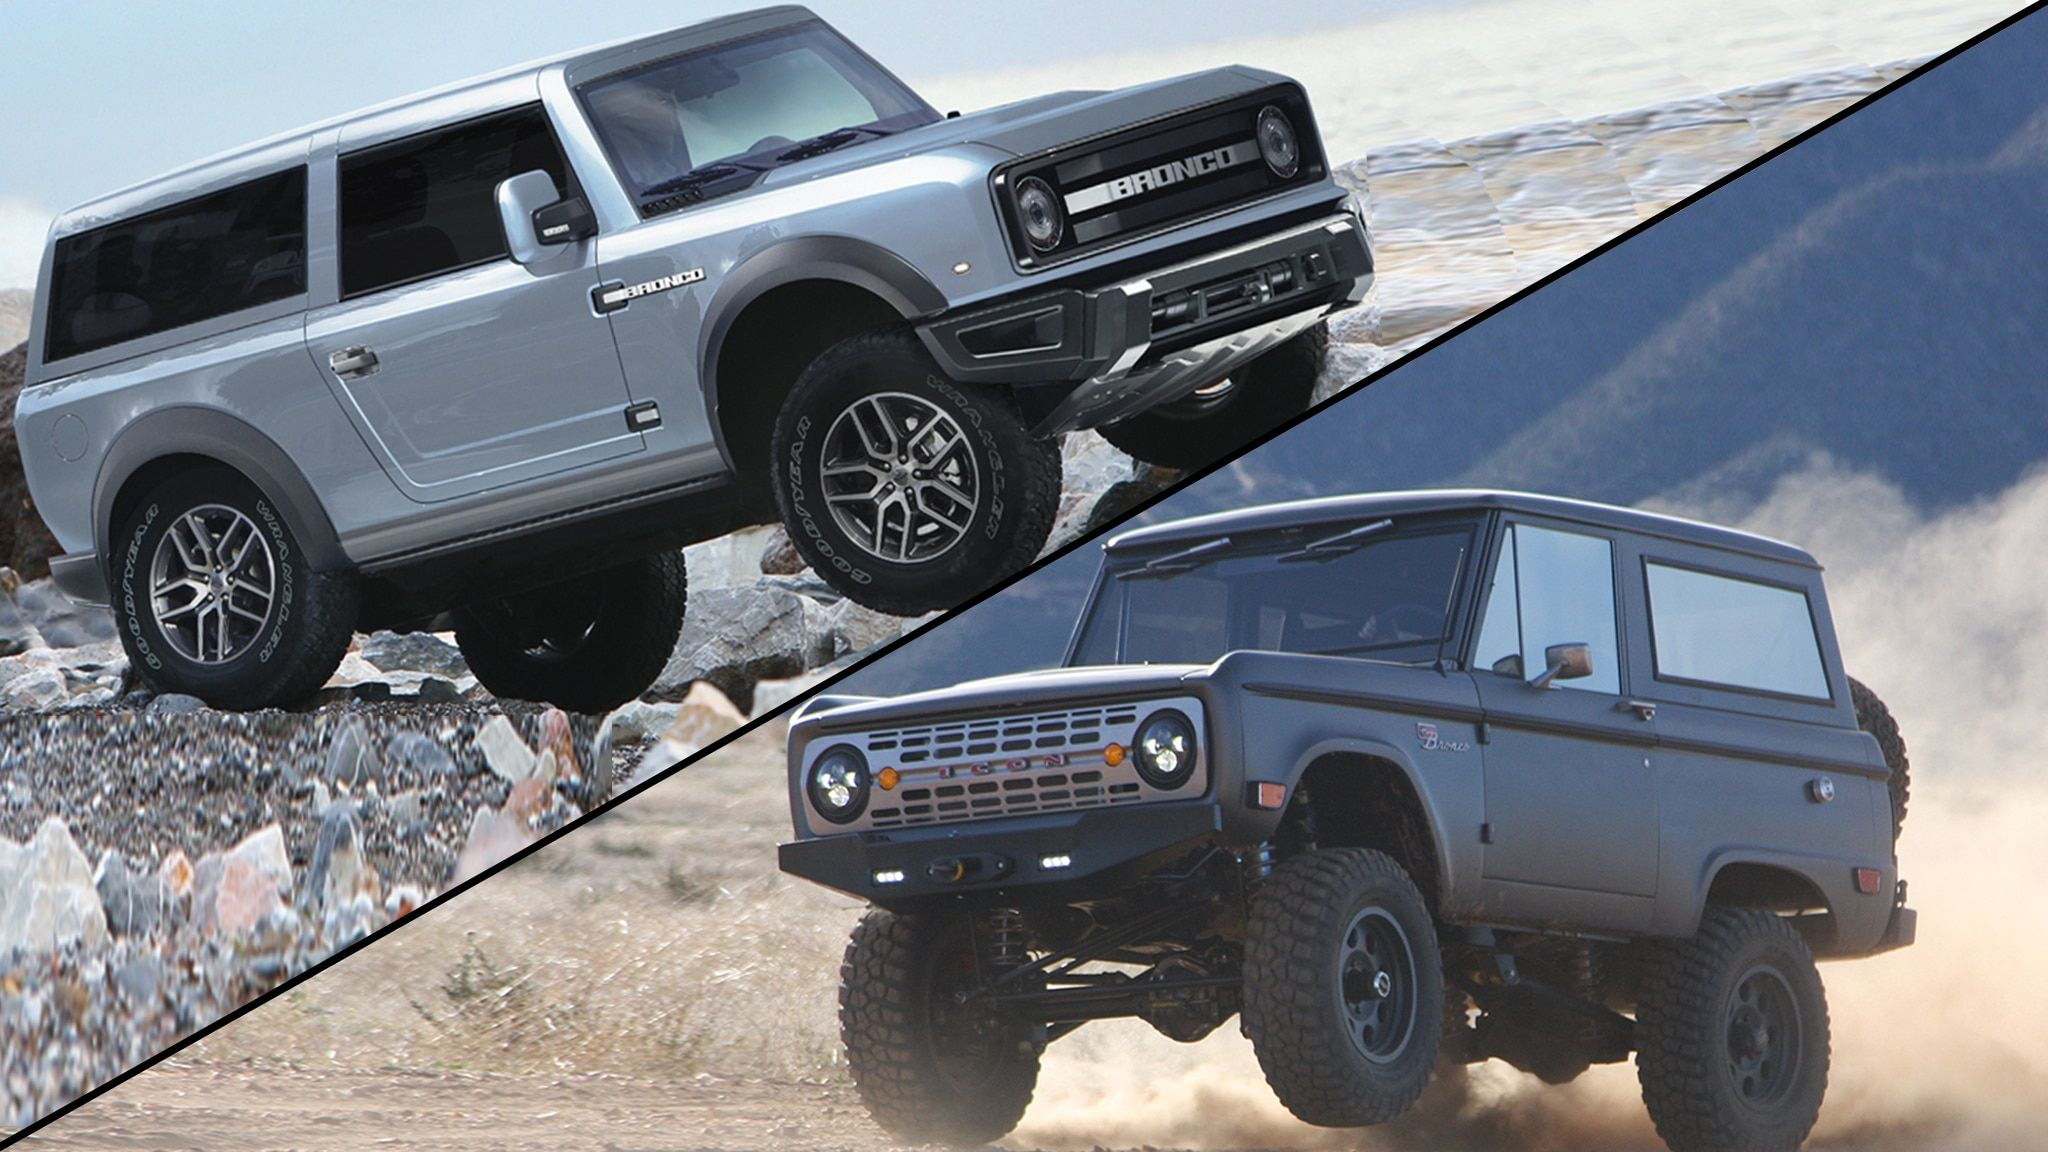 2021 Ford Bronco And Bronco Sport Will Offer Three Grille Designs In 2020 Ford F250 Diesel Ford Bronco F250 Diesel